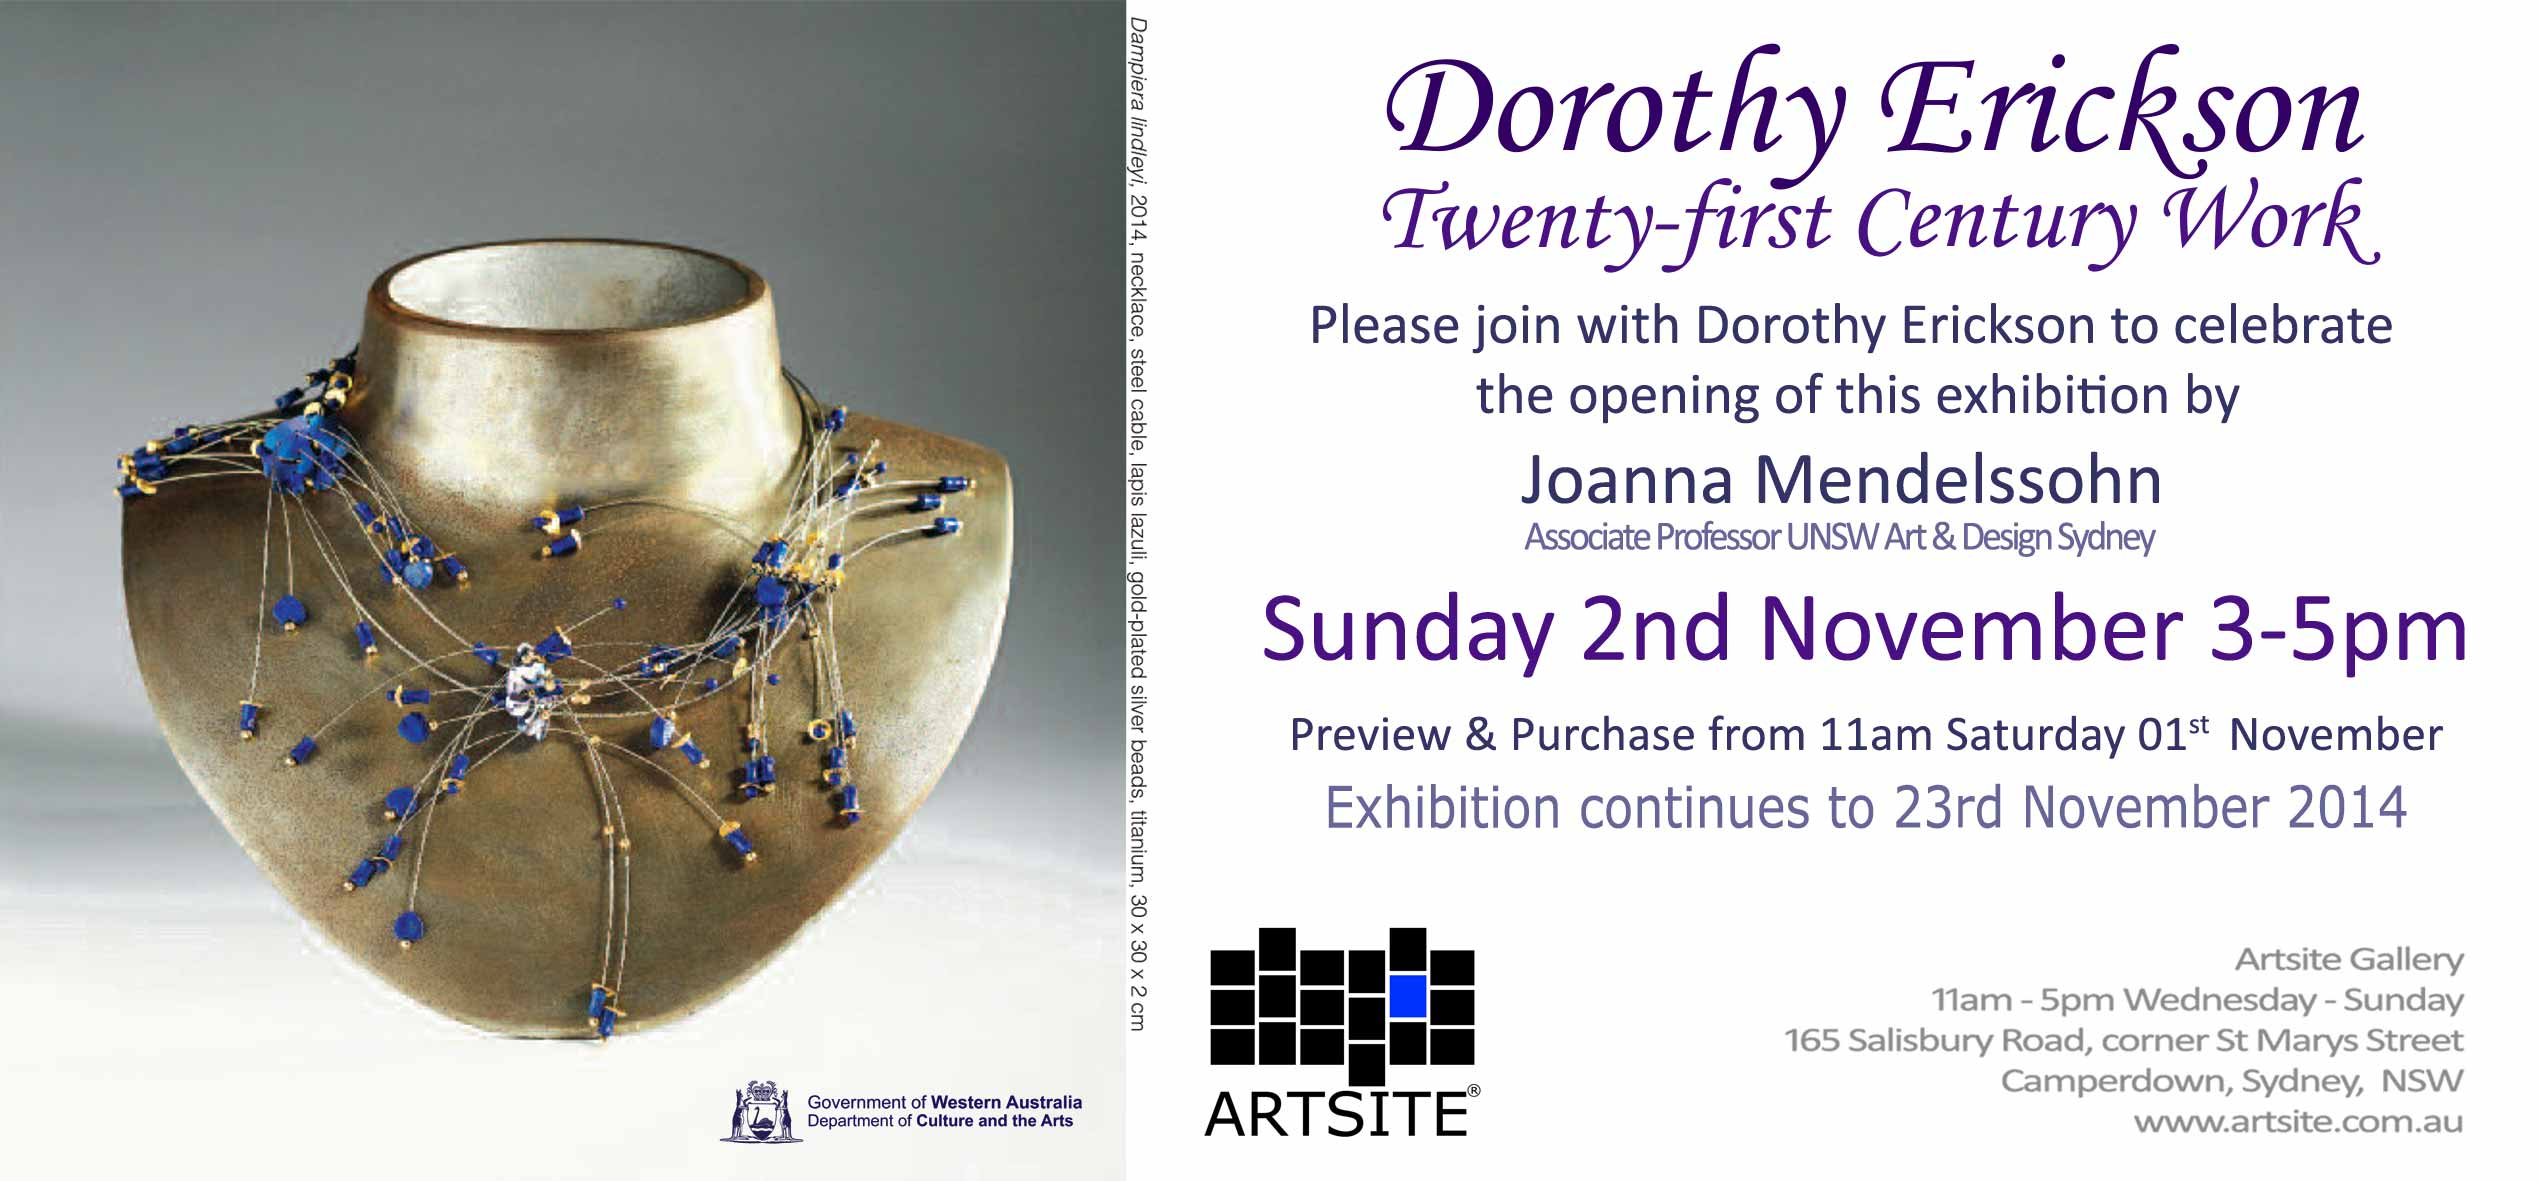 View Exhibition at Artsite Gallery, Sydney: Dorothy Erickson - 21st Century Works. 01 - 23 November 2014